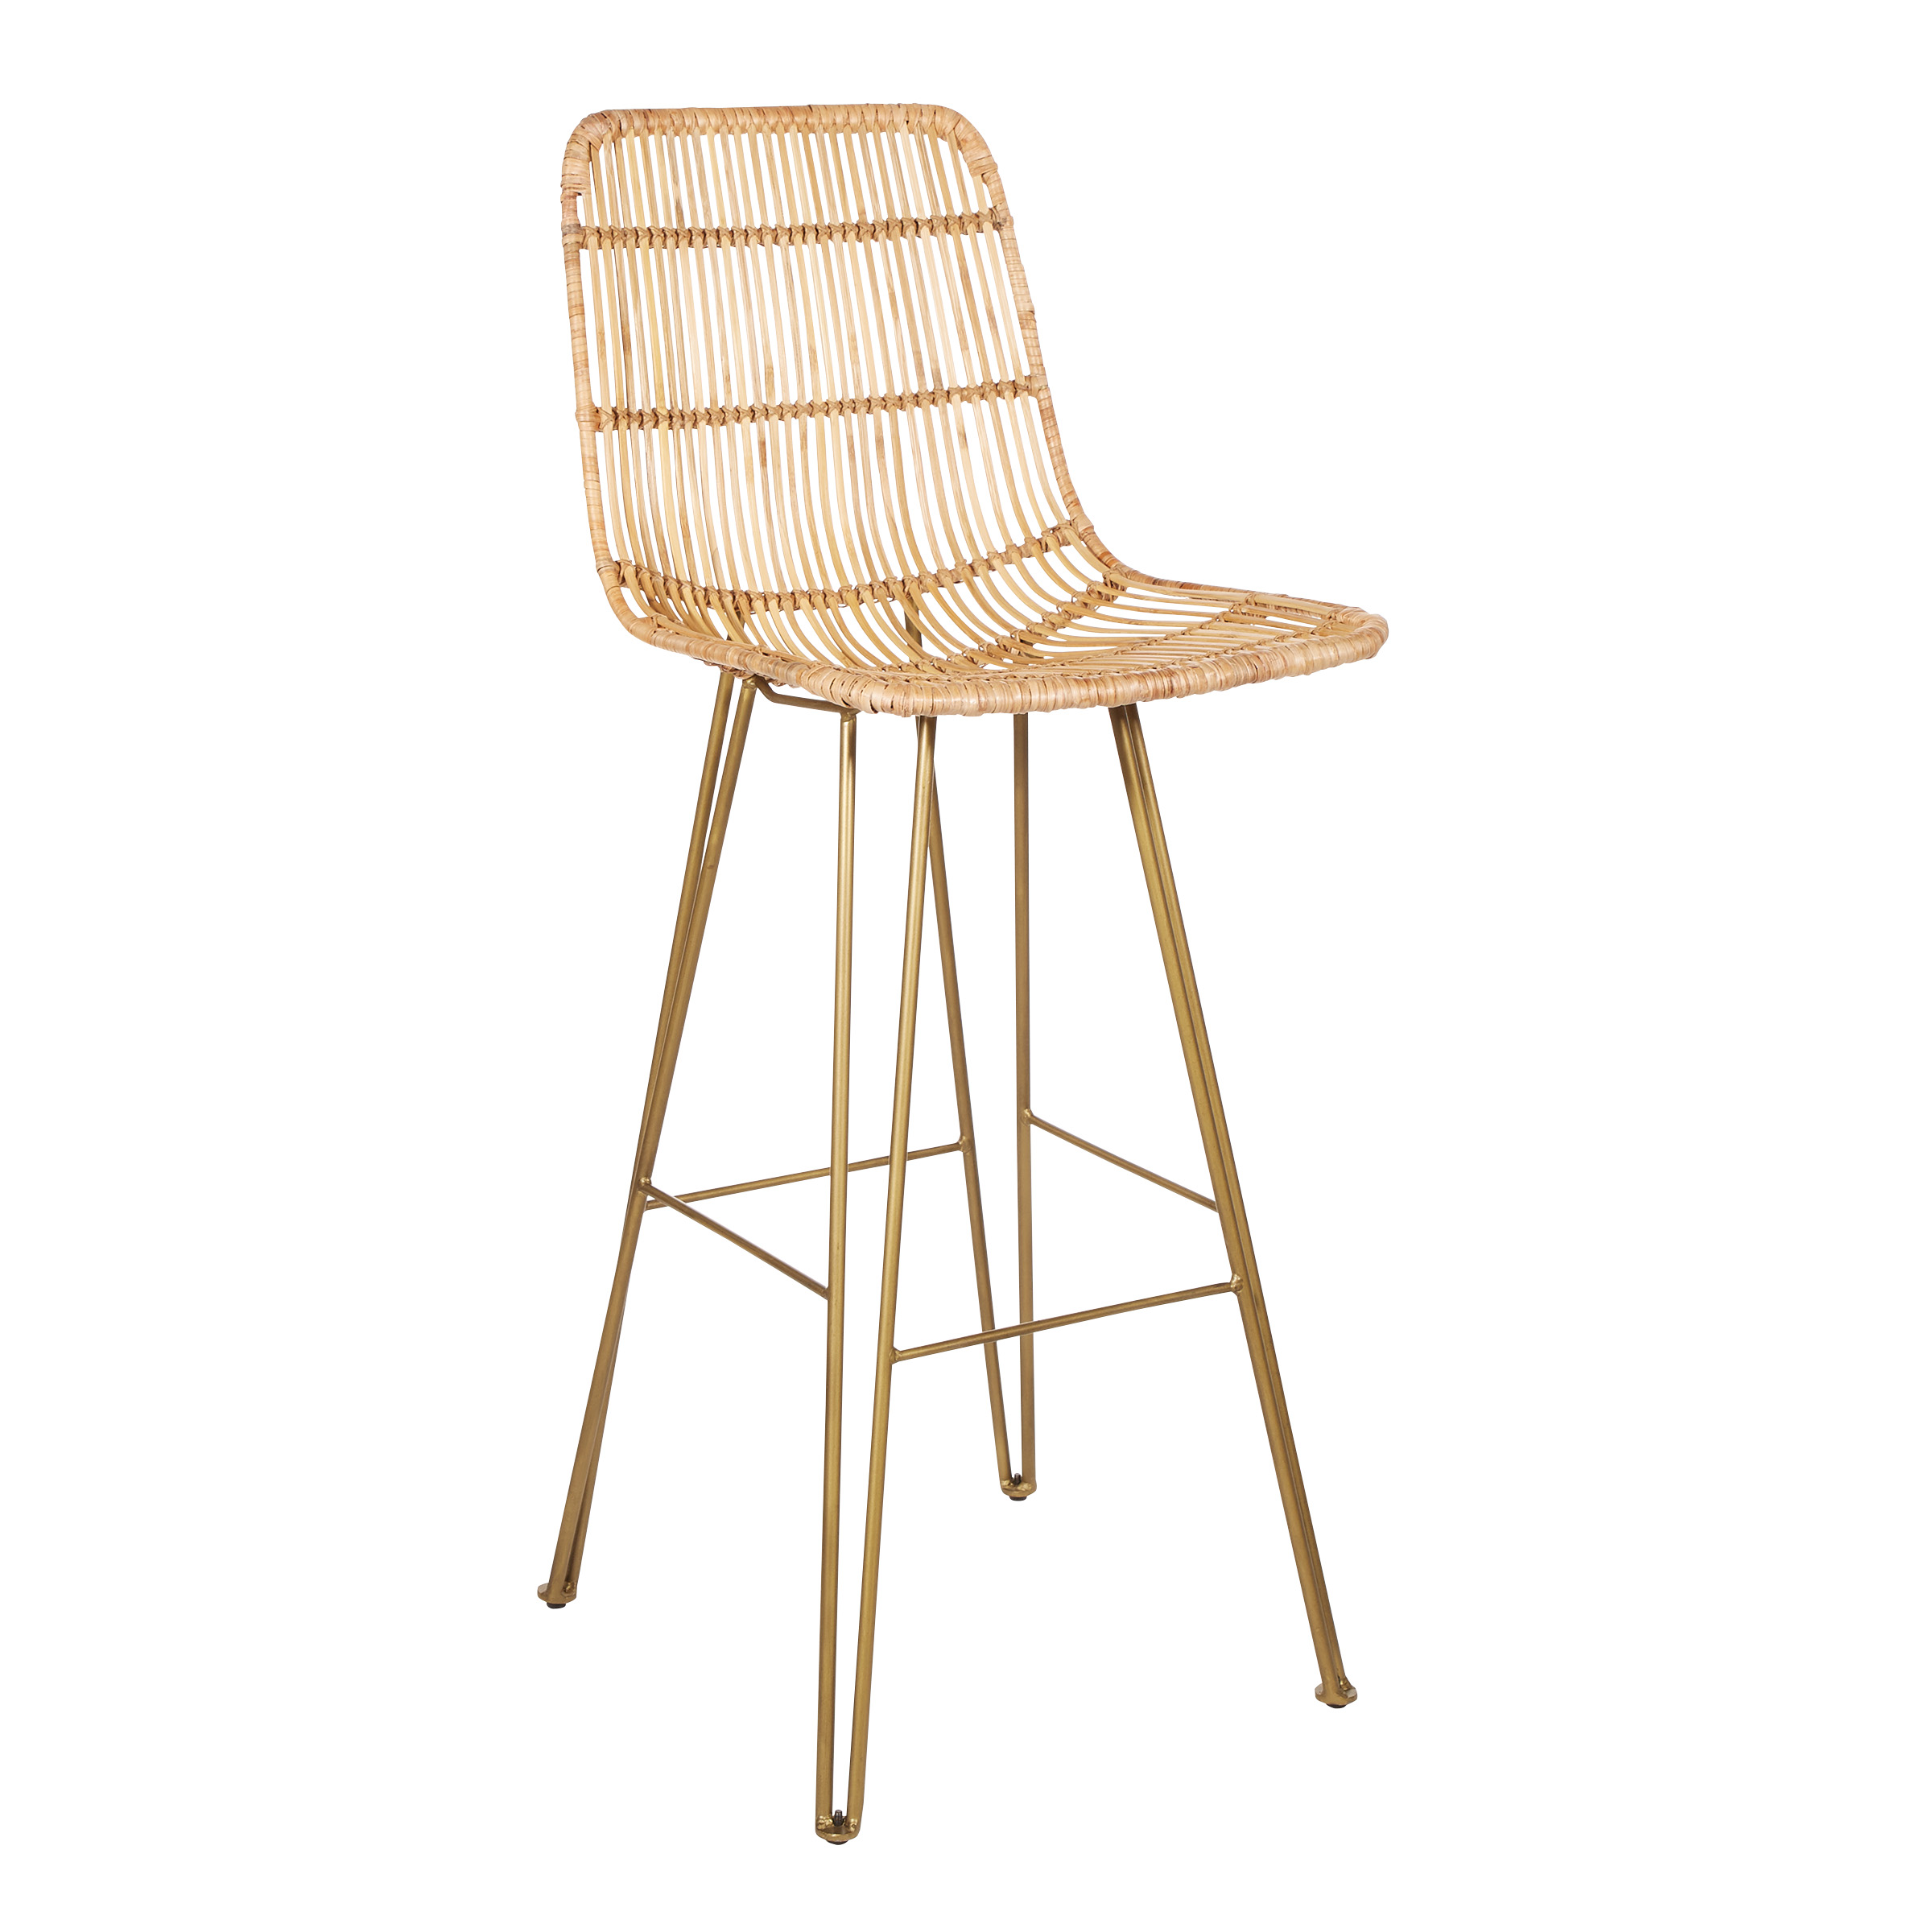 Inspired By Bassett Capri 30 Barstool With Natual Weave And Antique Brass Metal Finish 2 Ctn Walmart Com Walmart Com